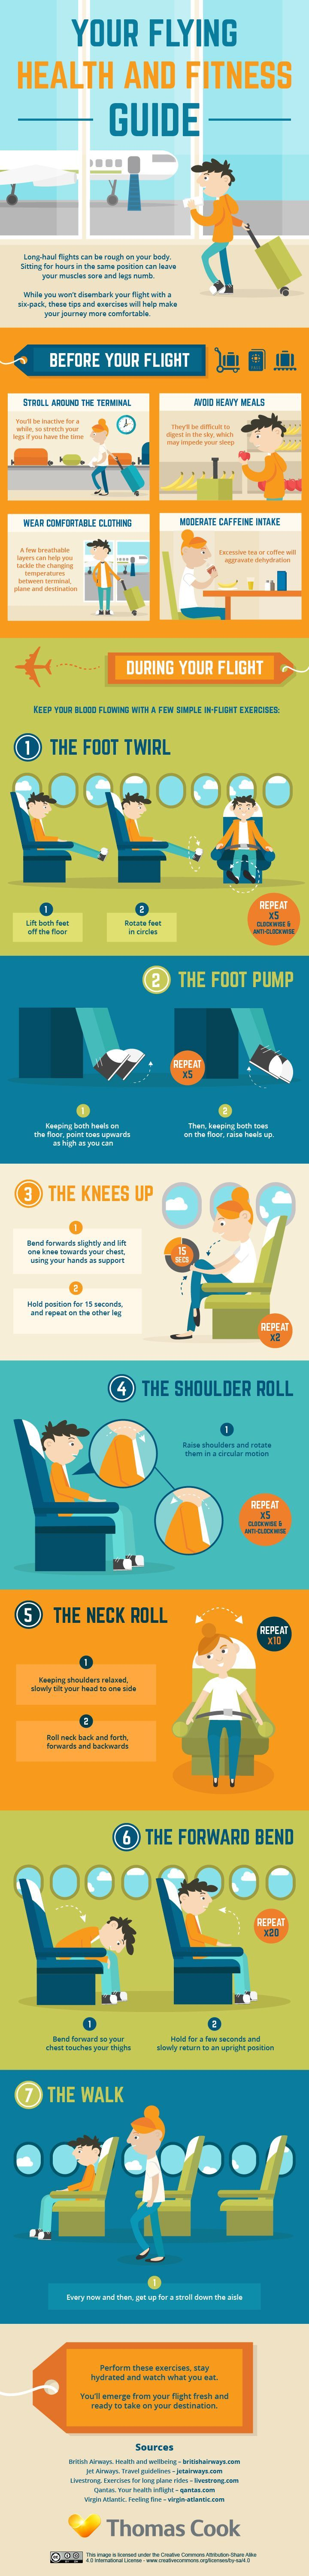 7 in-seat exercises that will make your flight less painful